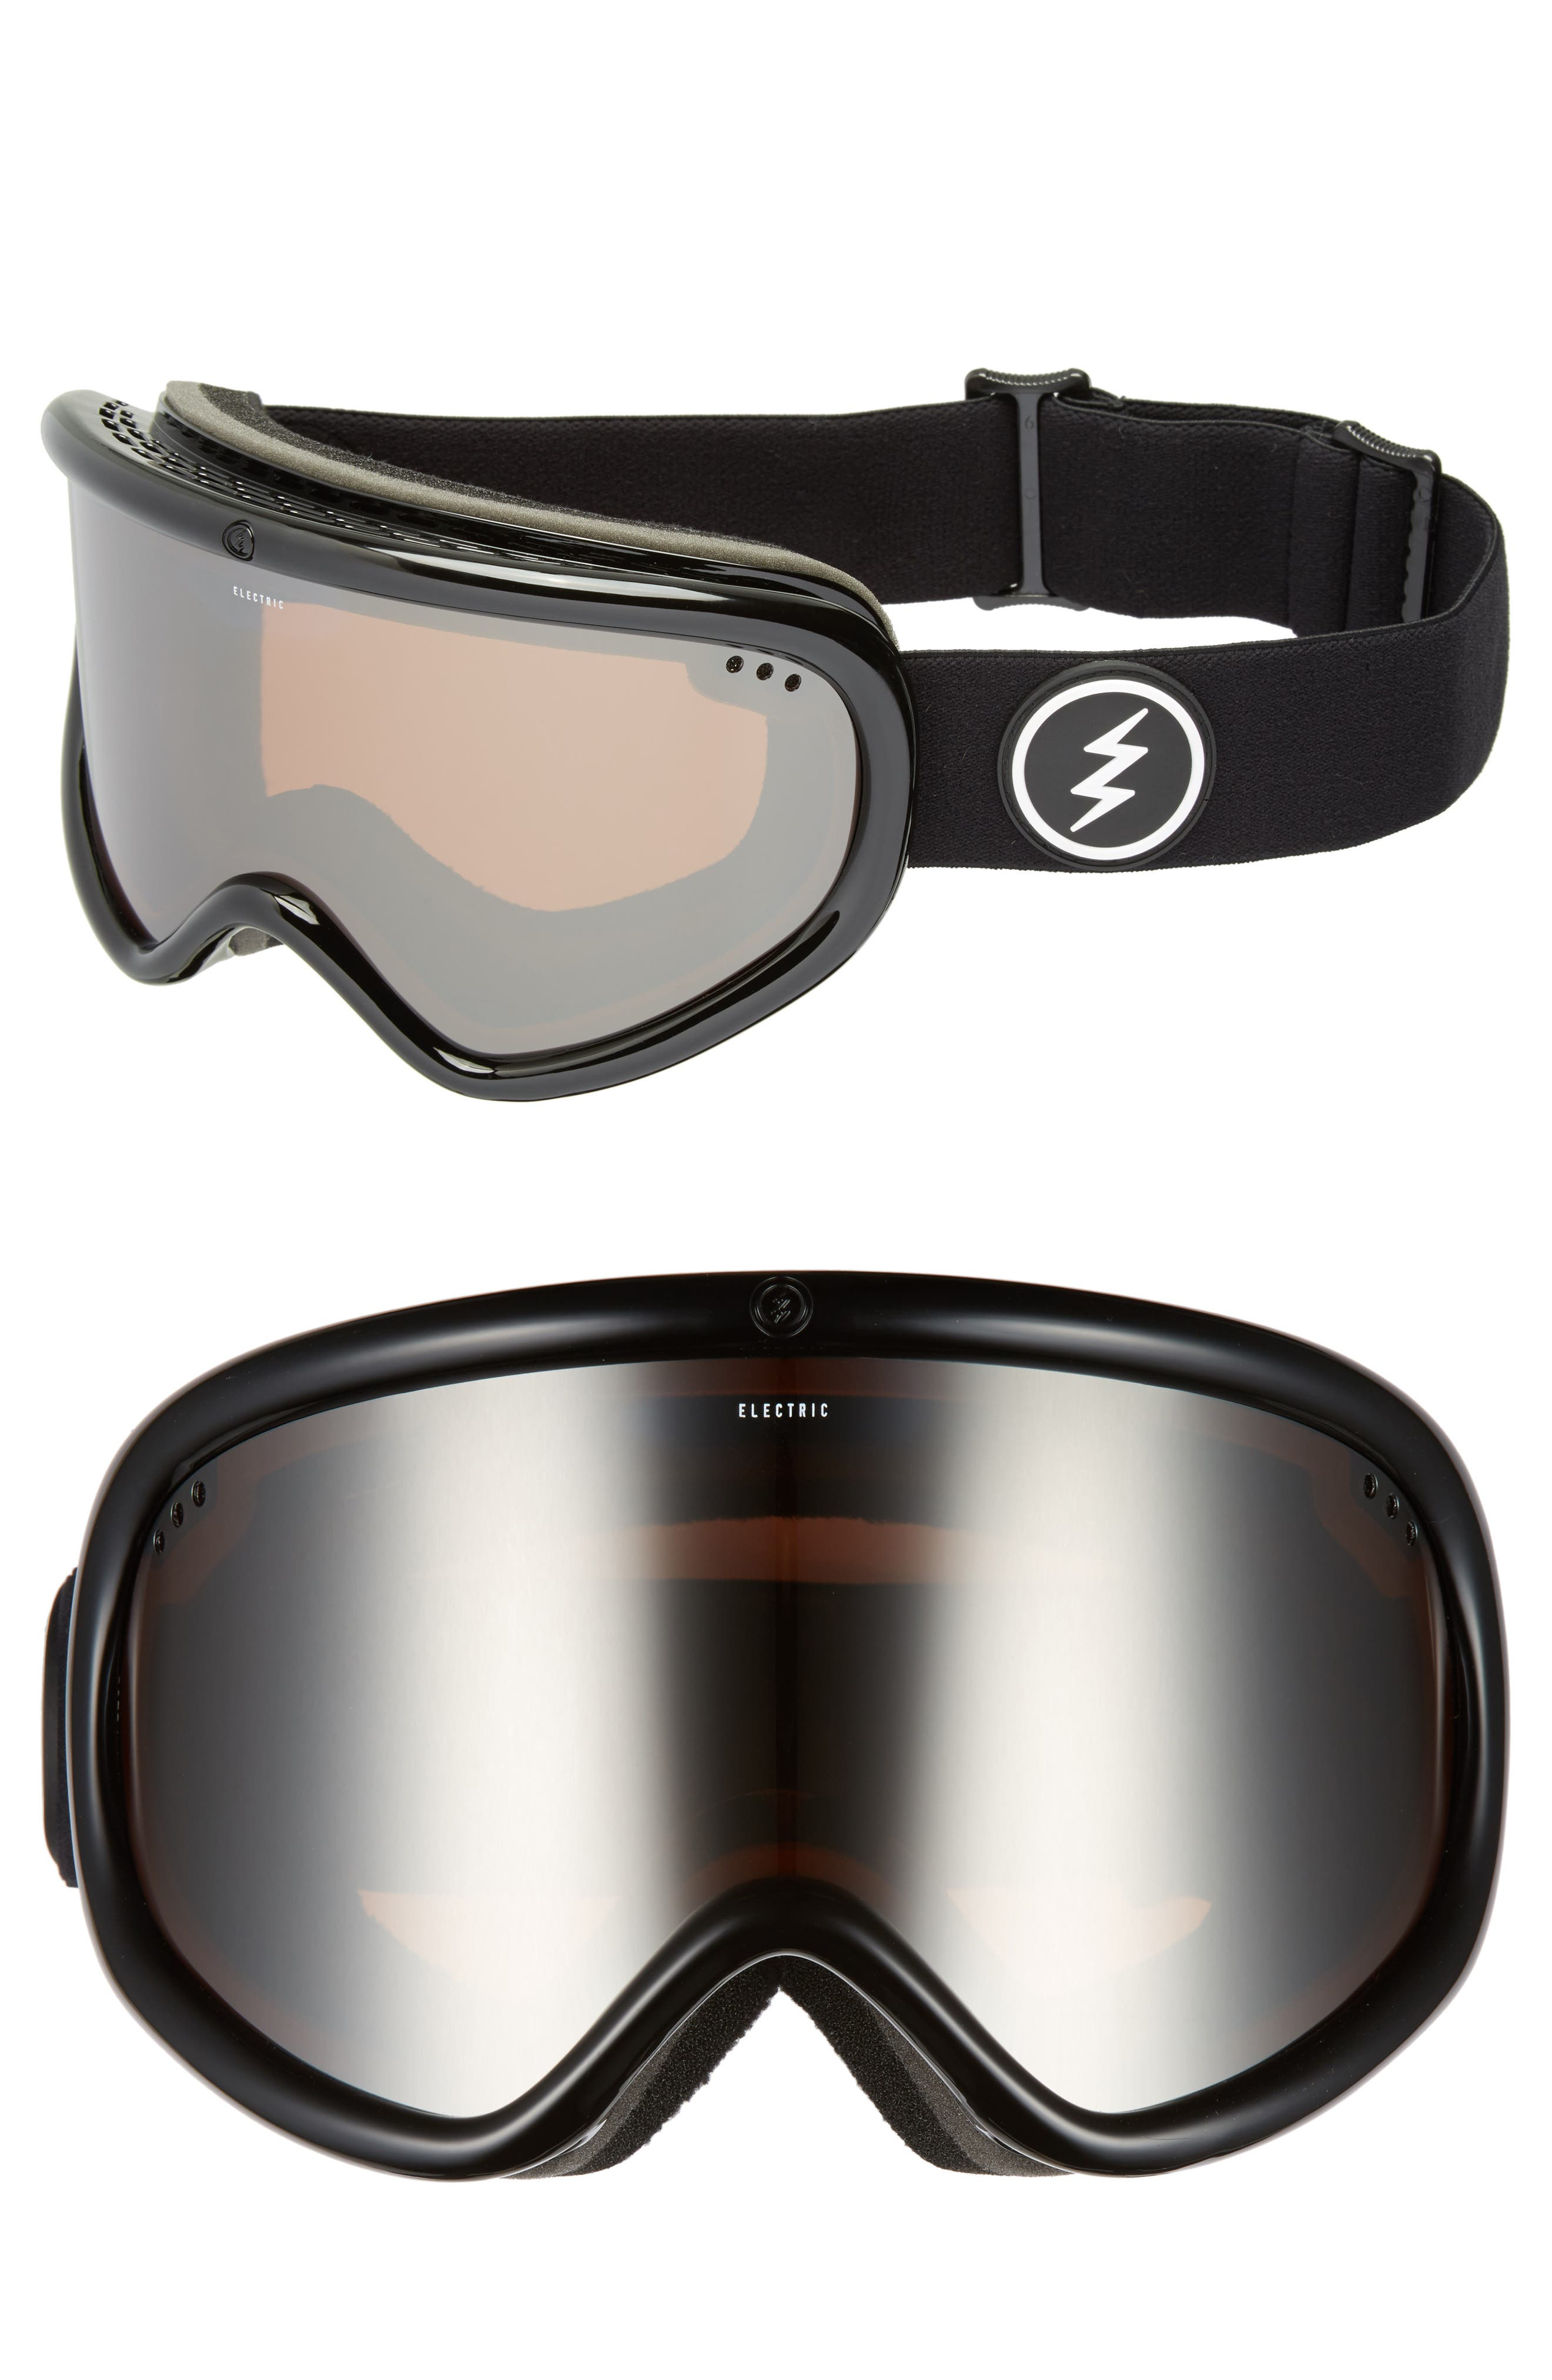 Main Image - ELECTRIC Charger XL Snow Goggles